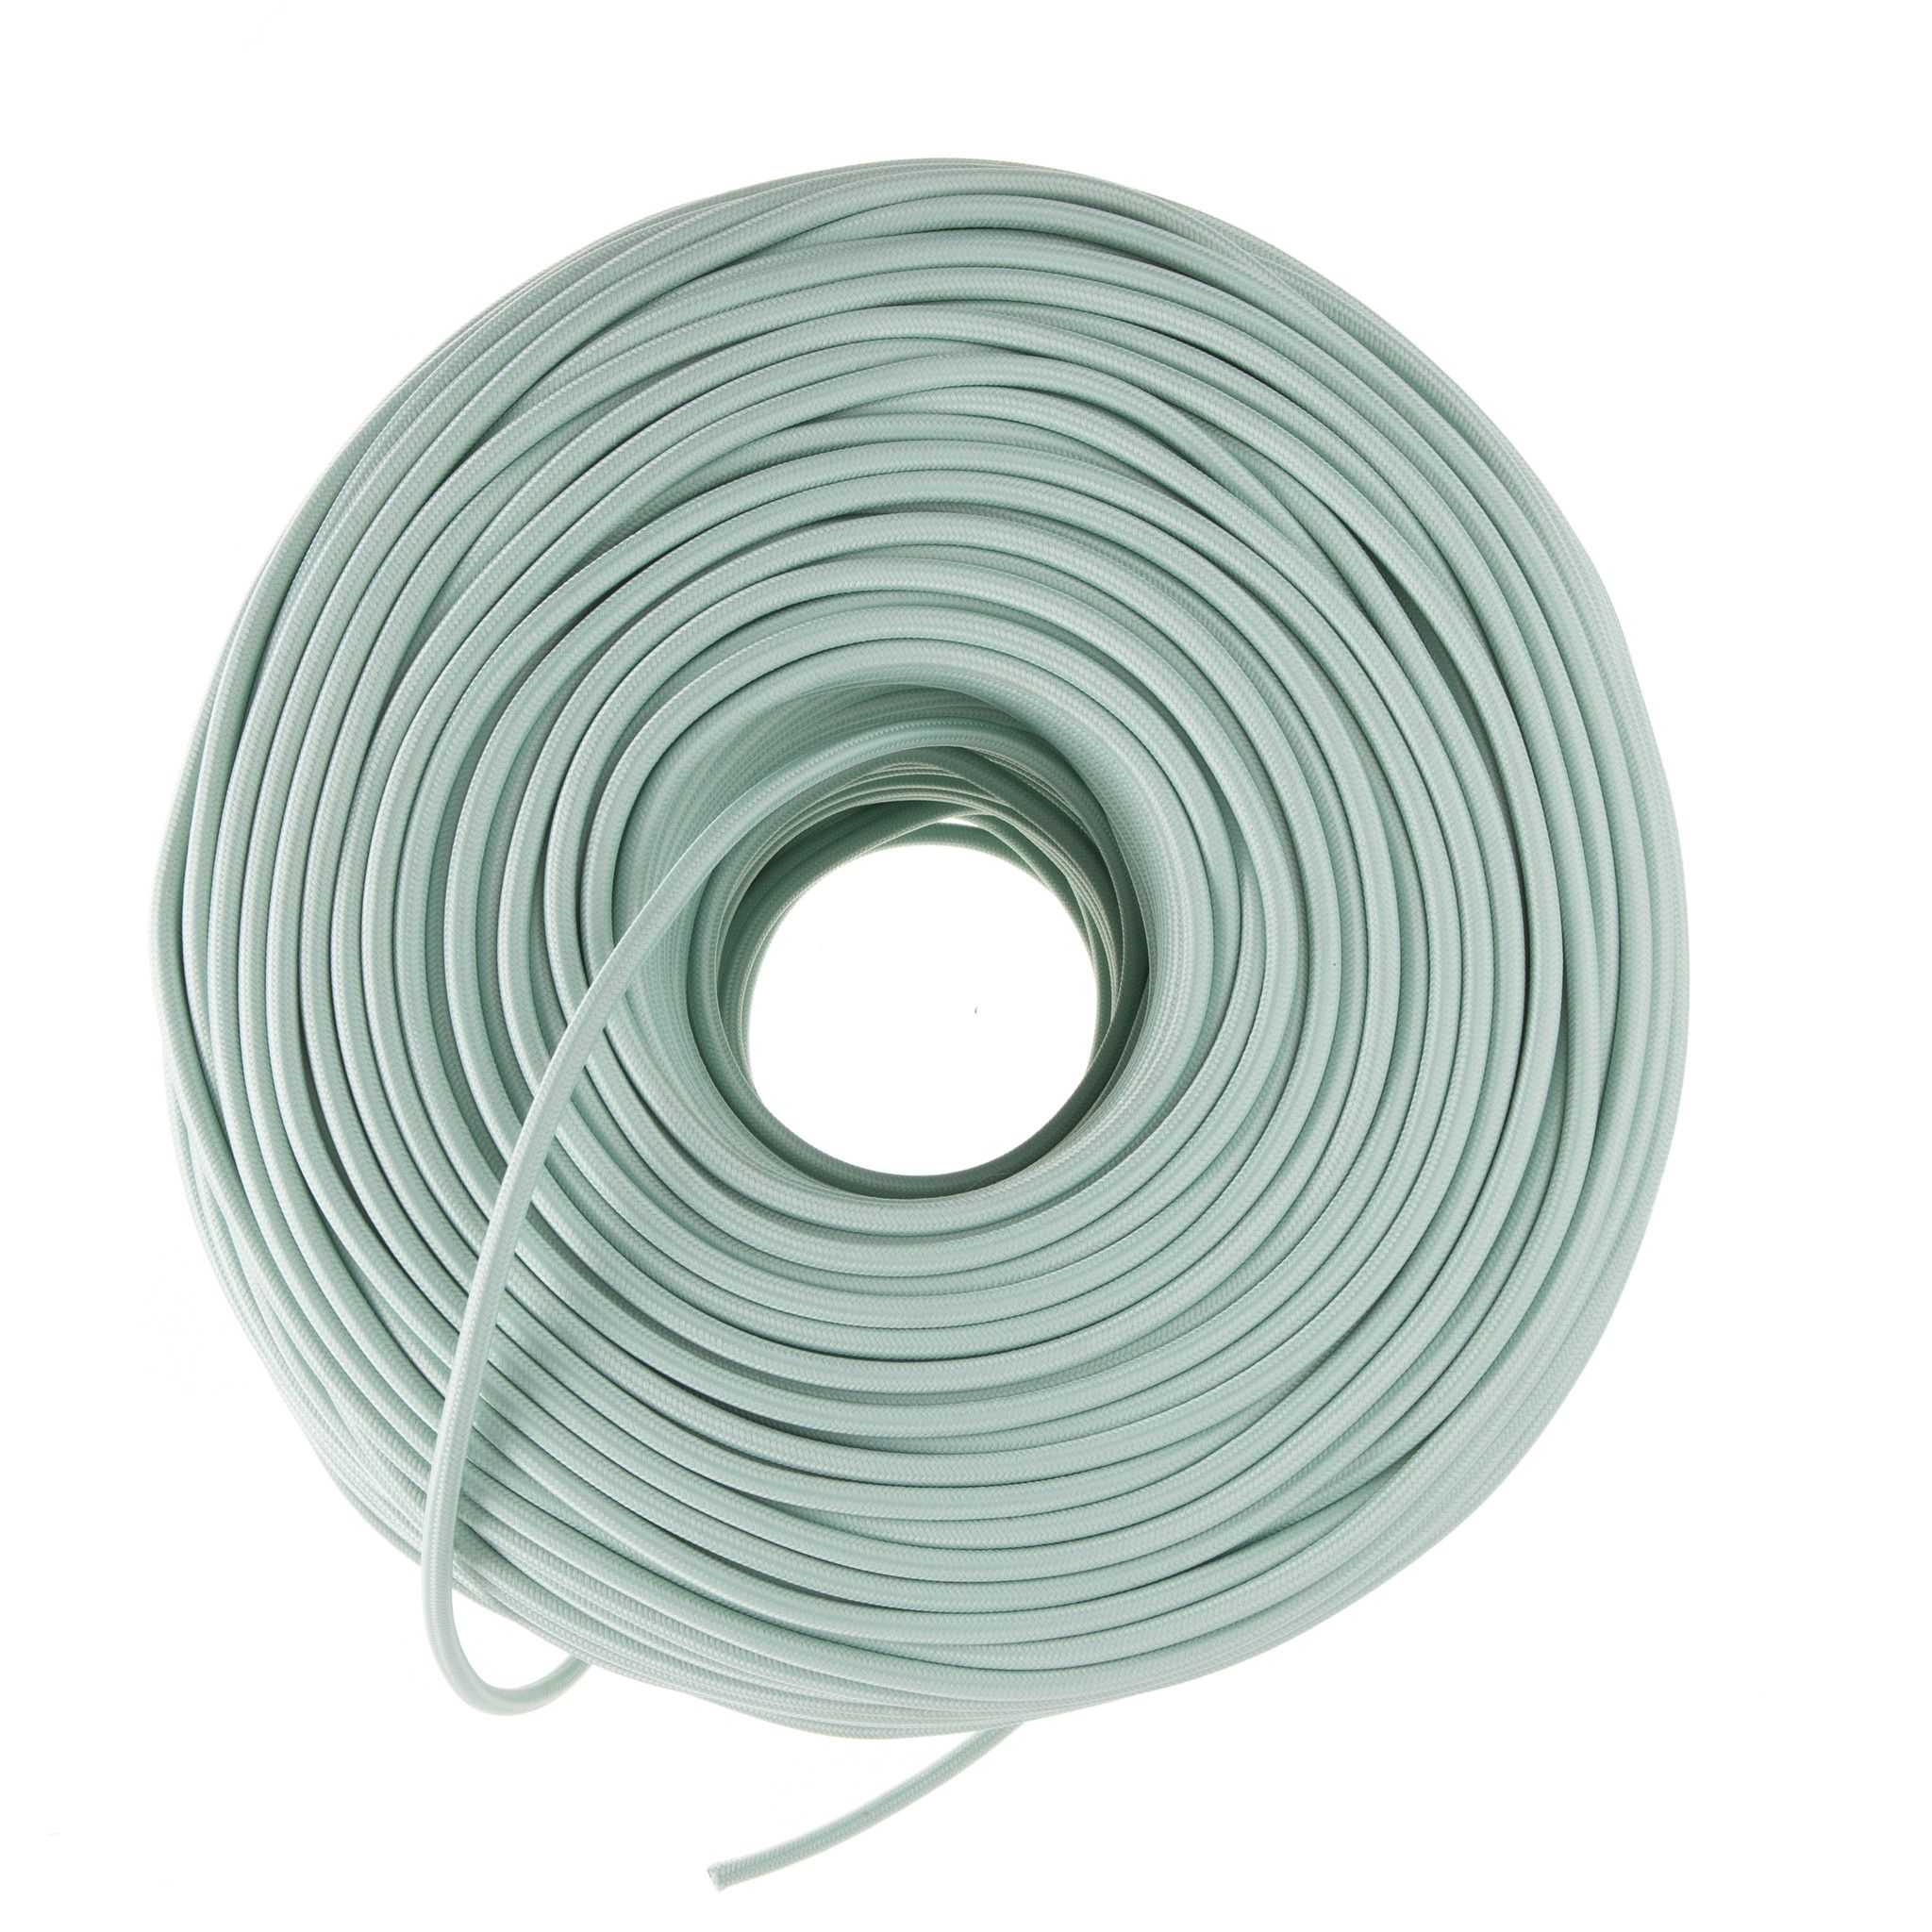 So Cord Listed 3 4 5 Conductor So Sow Cable Flexible Cored: DIY Fabric Wire By The Foot - Eucalyptus